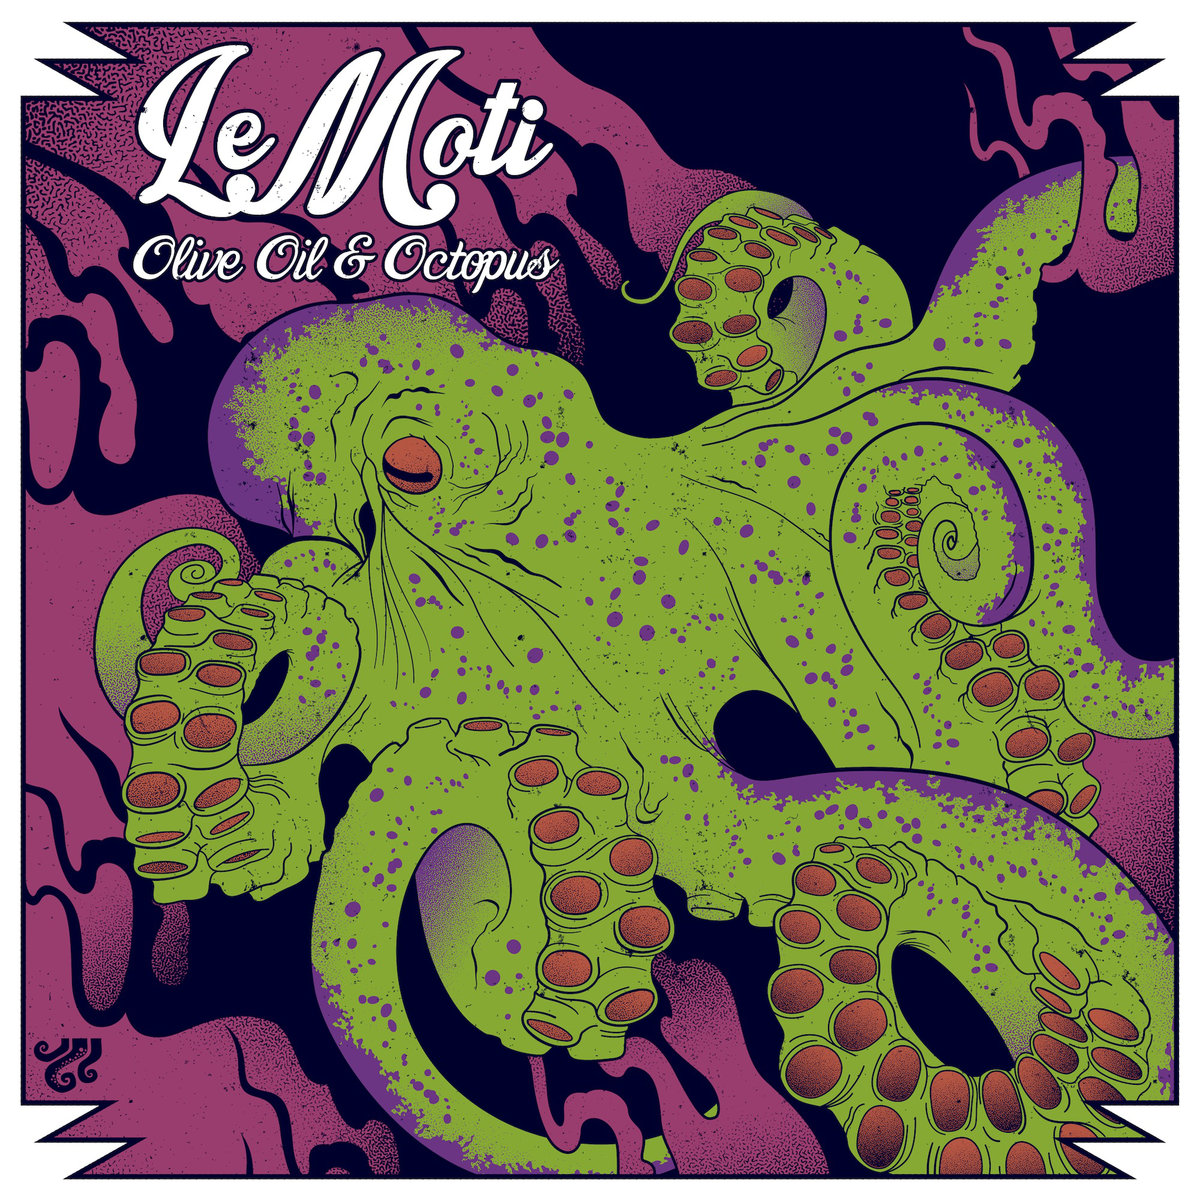 LeMoti - Shades of Blue @ 'Olive Oil & Octopus' album (Austin)